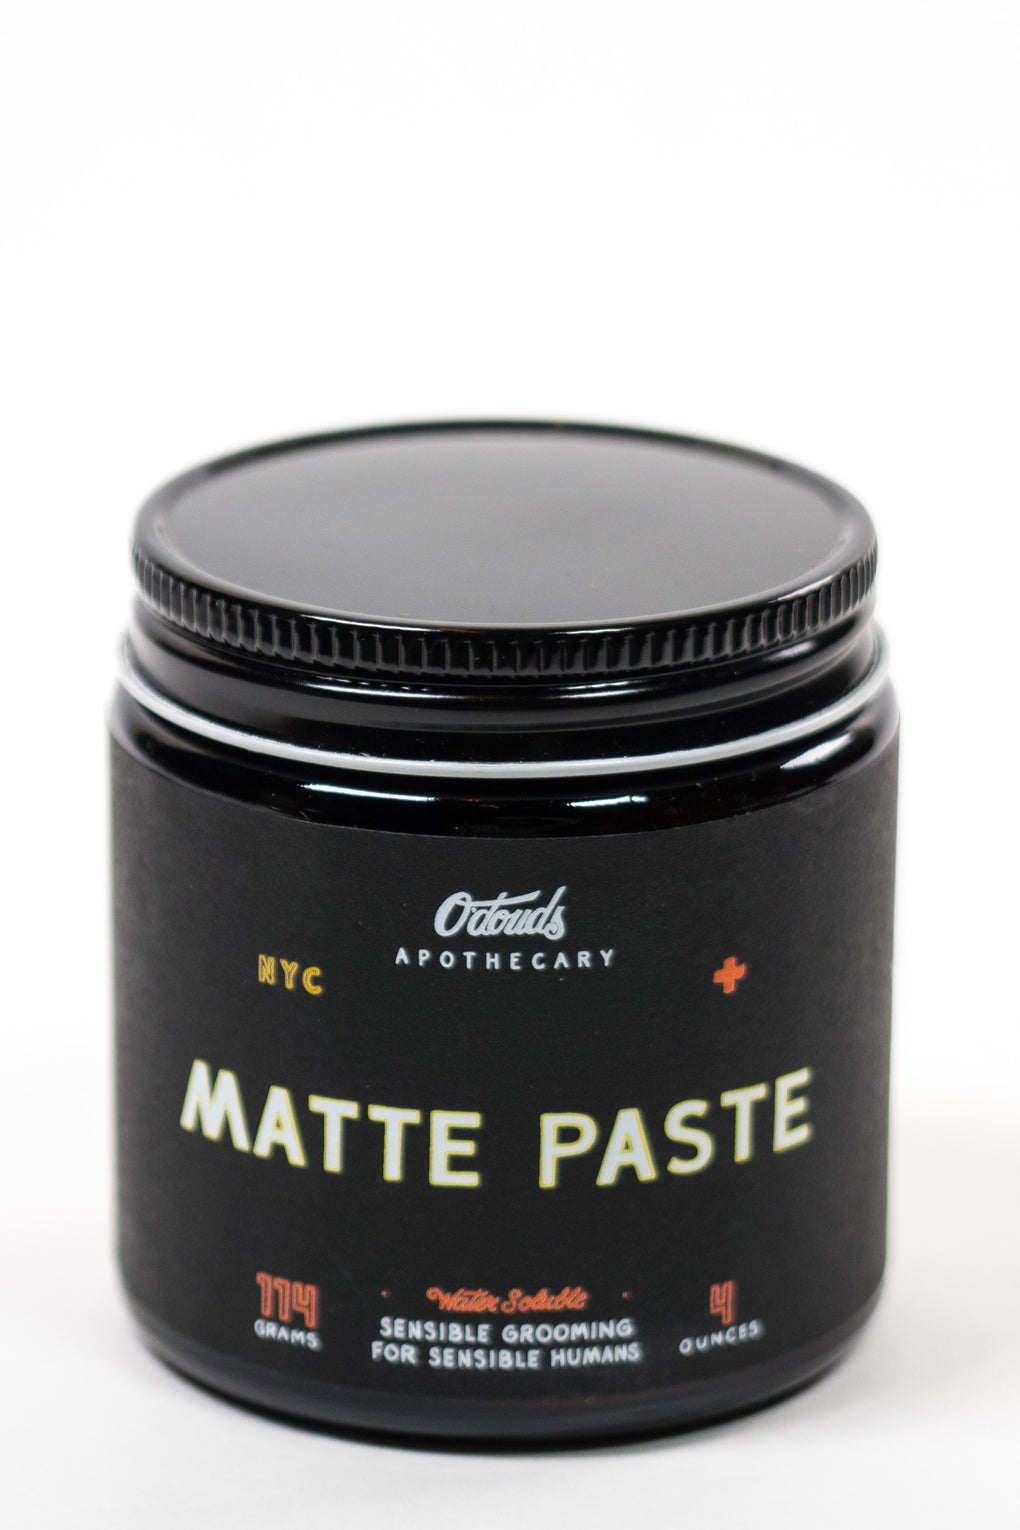 O'Douds Matte Paste at Consigliere